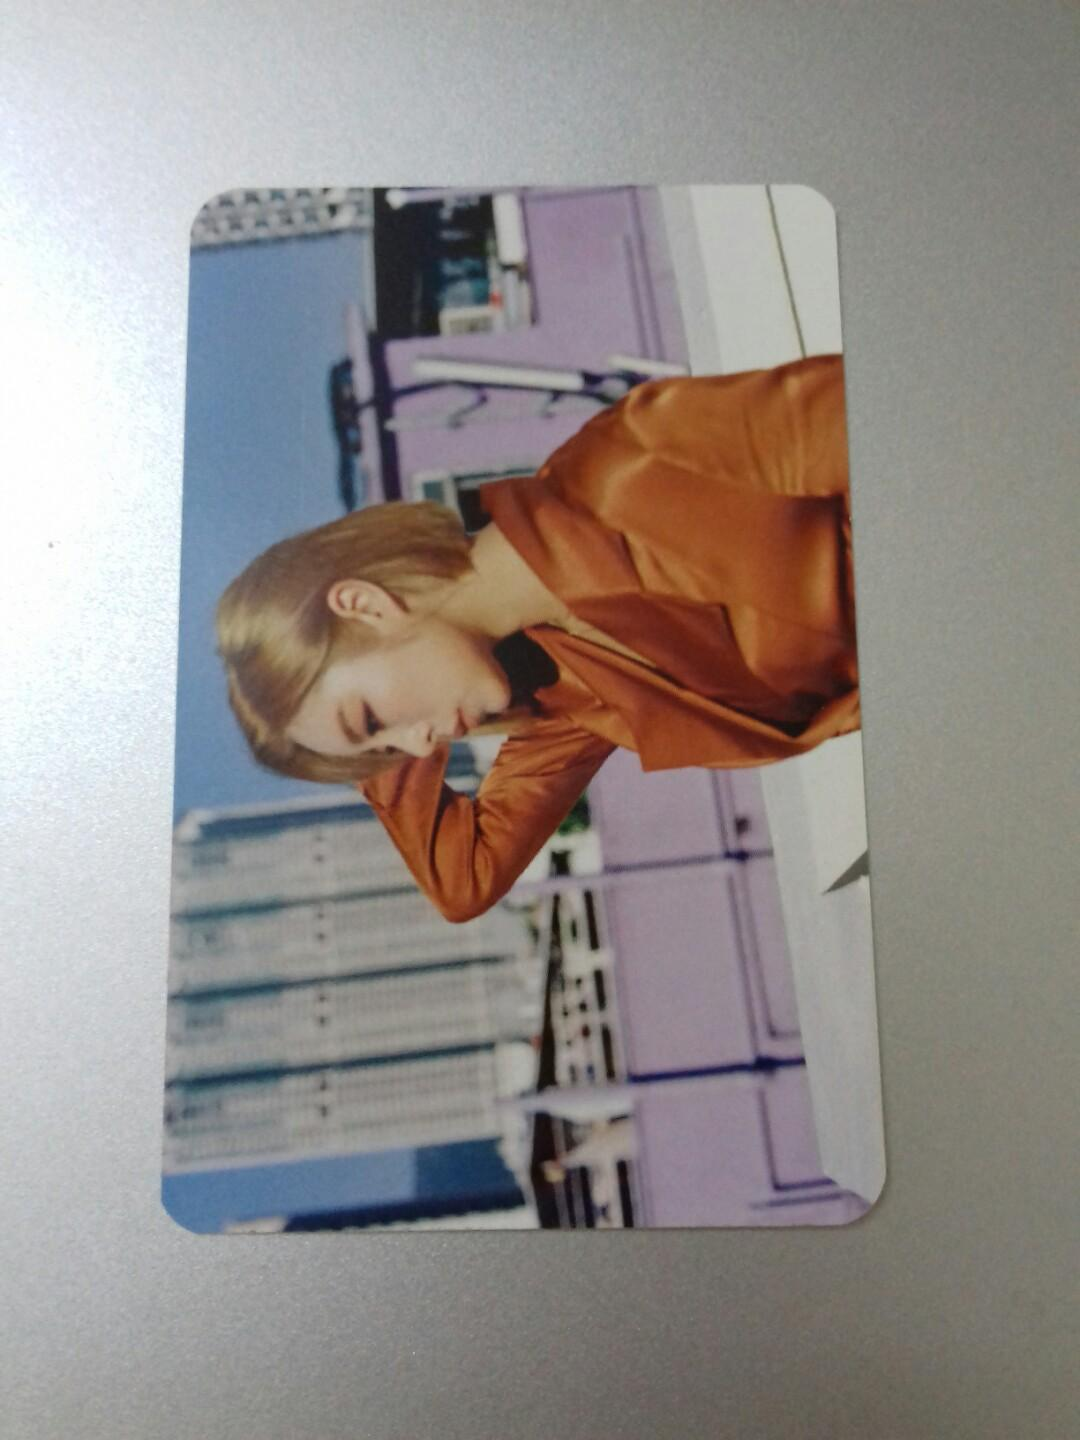 WTT Wheein Blue S photocard to Solar Blue S photocard